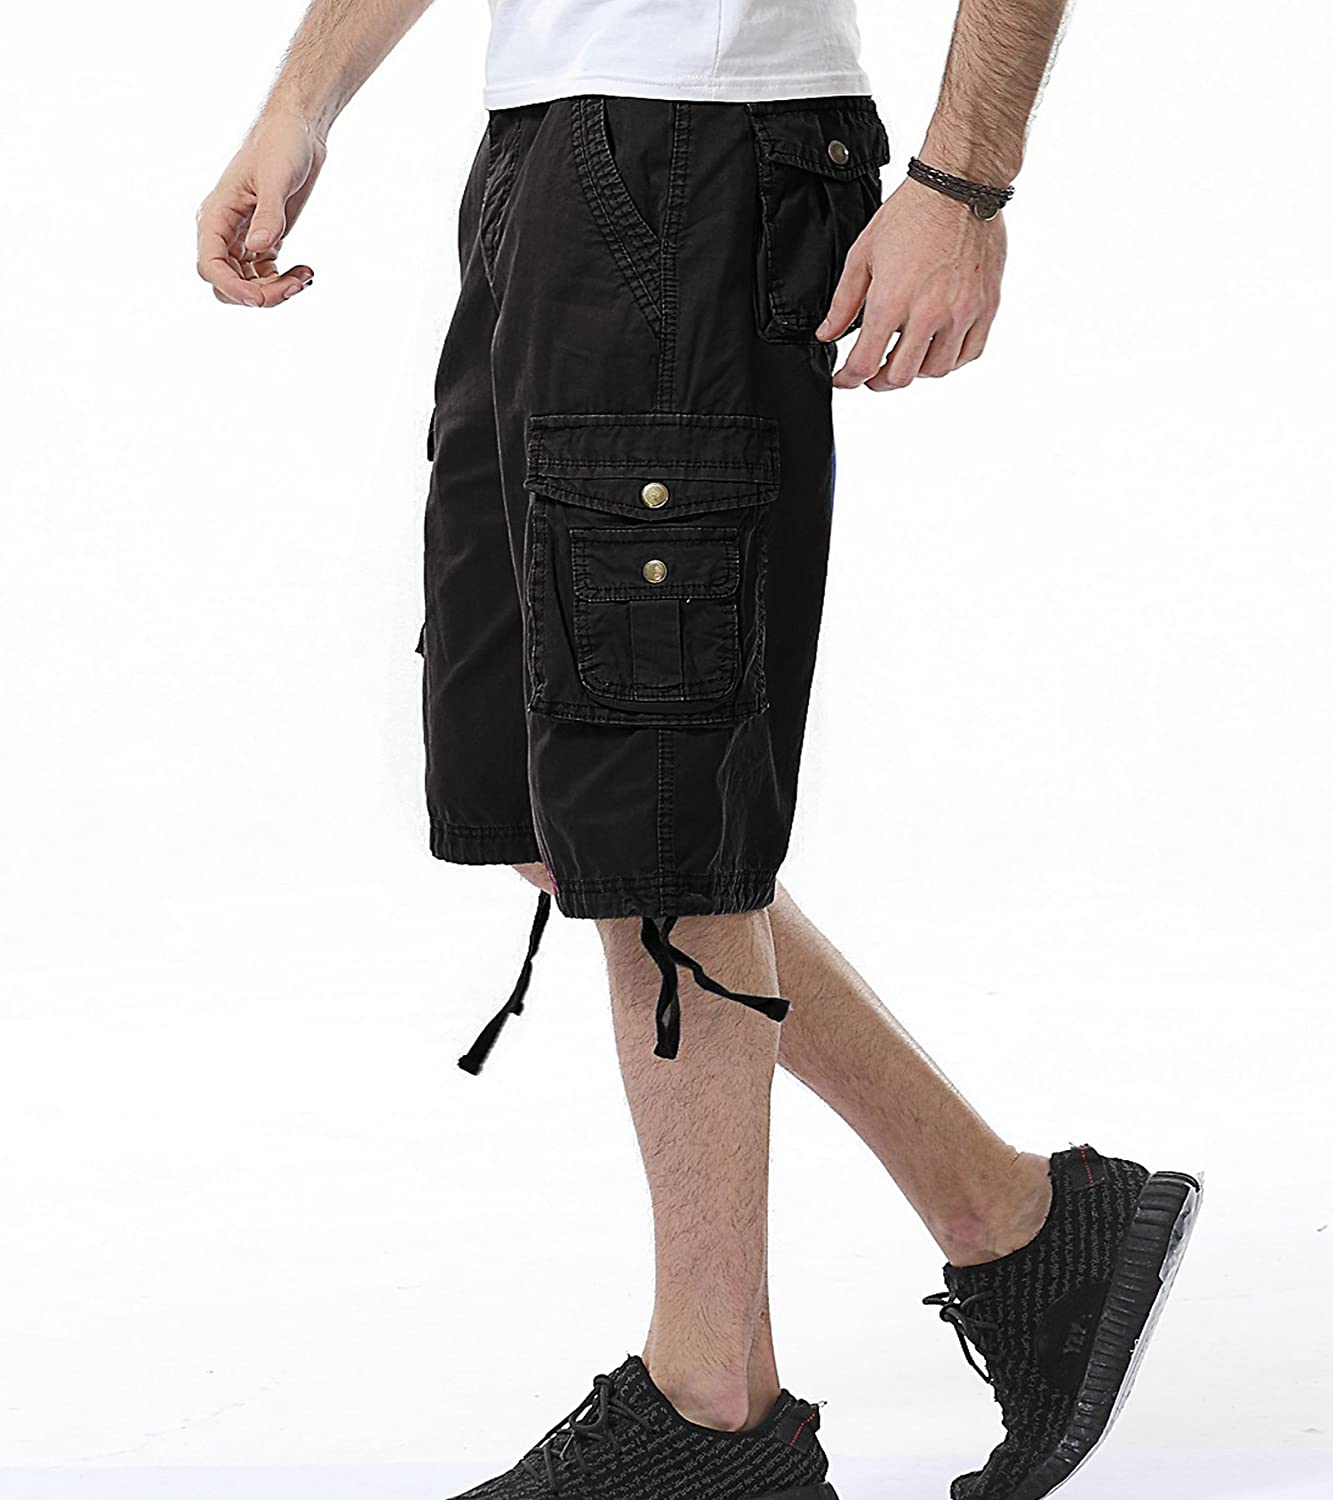 DONGD Mens Cargo Shorts Cotton Relaxed Fit Camouflage Camo Cargo Short